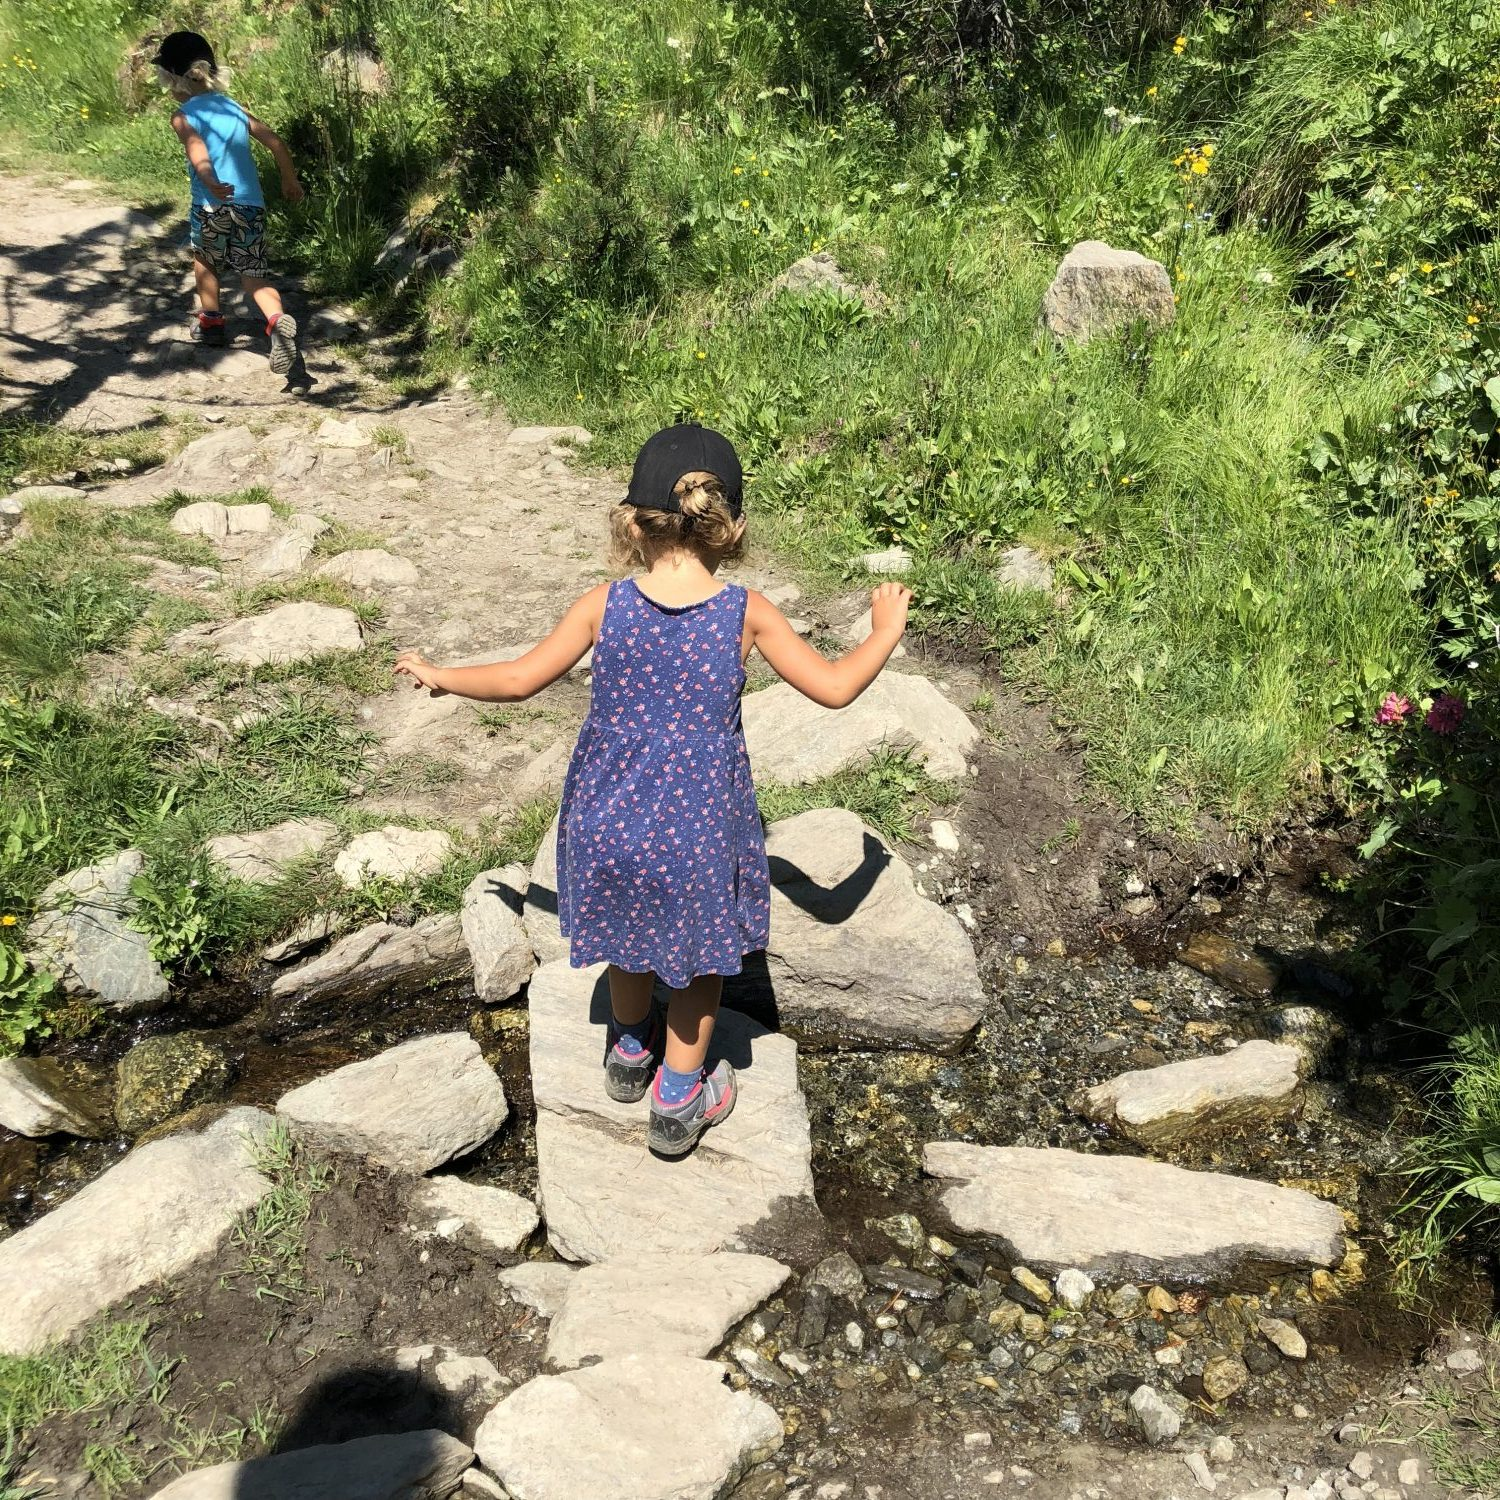 Expedition Family Happiness - The kids loved Hiking in Andorra!